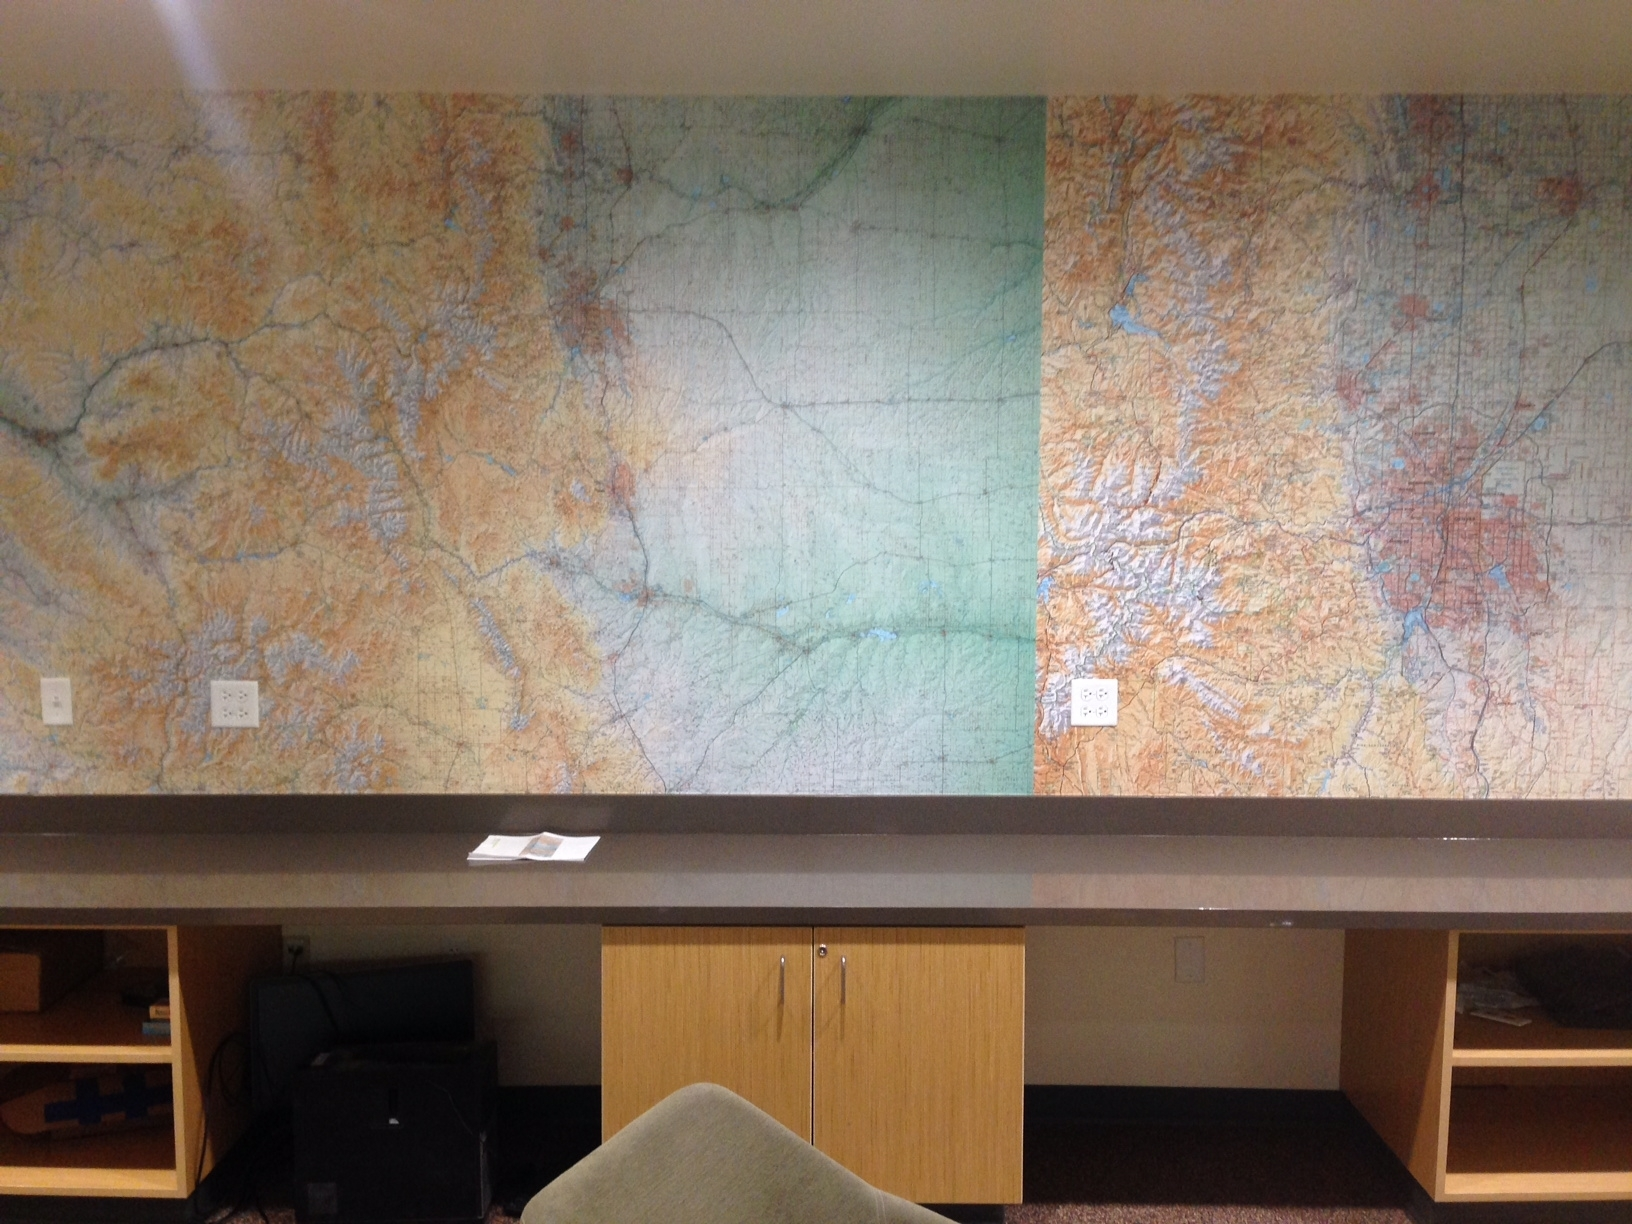 Map mural wall covering - CU Boulder